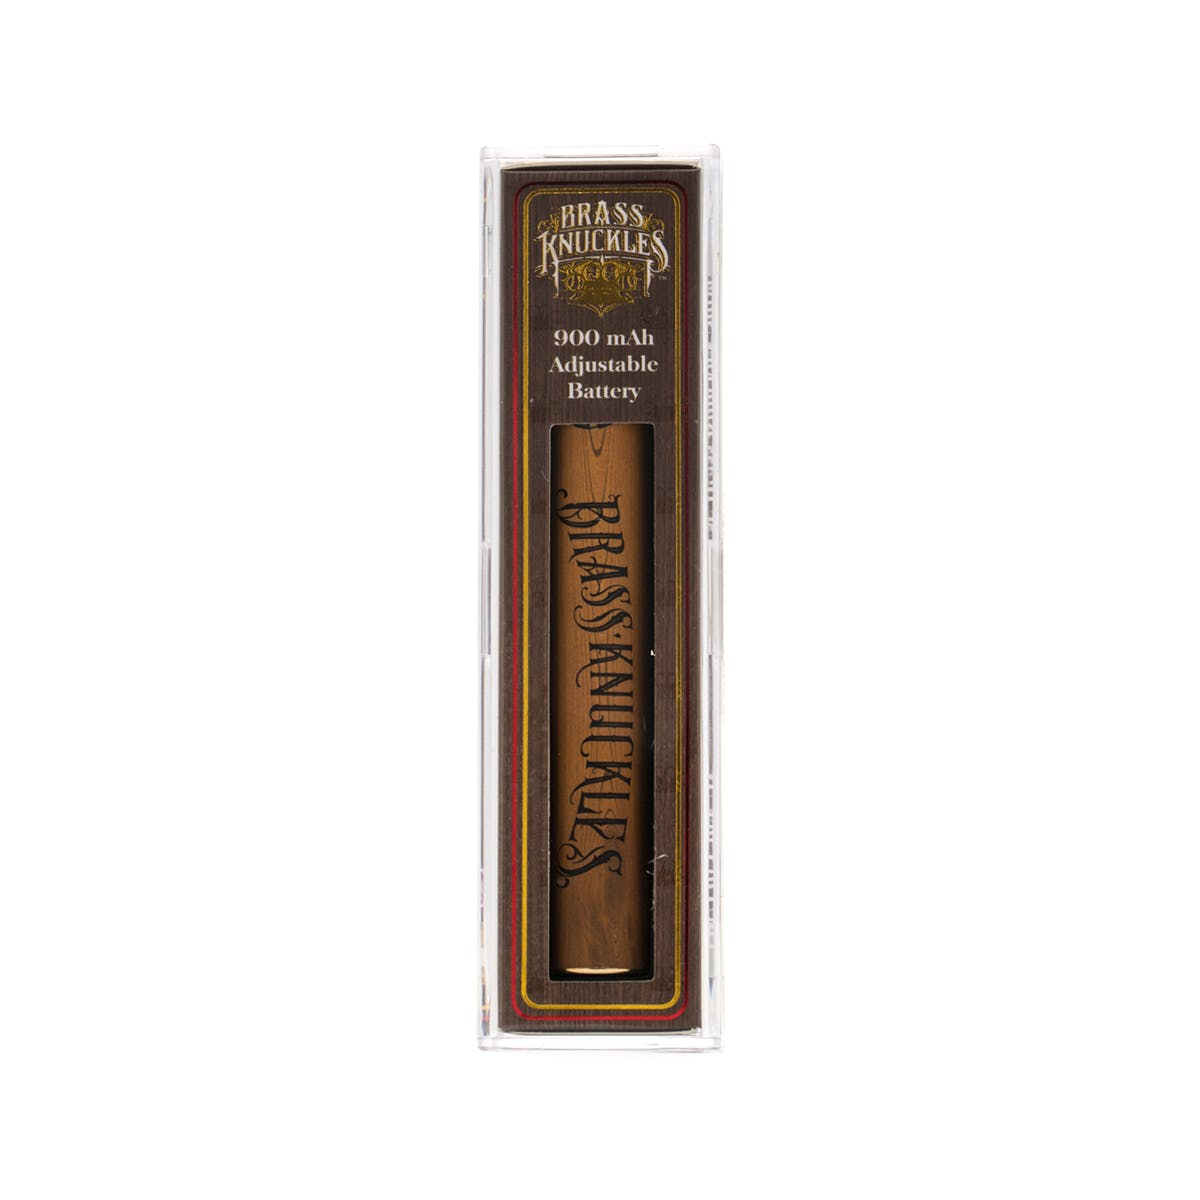 marijuana-dispensaries-platinum-club-in-reseda-adjustable-wood-finish-battery-900mah